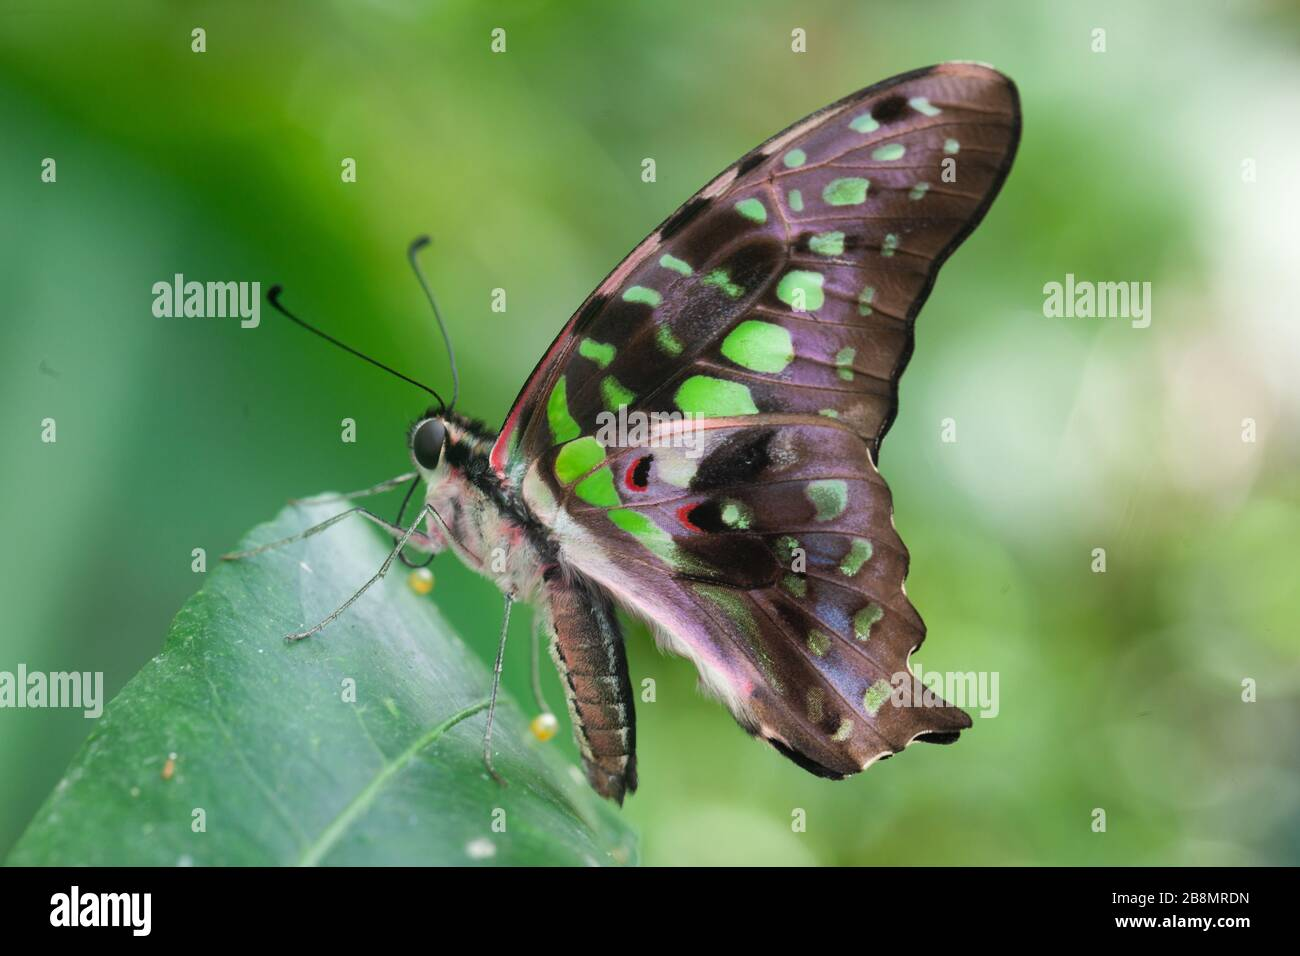 Natural world macro - A Green spotted triangle butterfly, Graphium agamemnon settles on peak of a lush green neo-tropical plant leaf Stock Photo